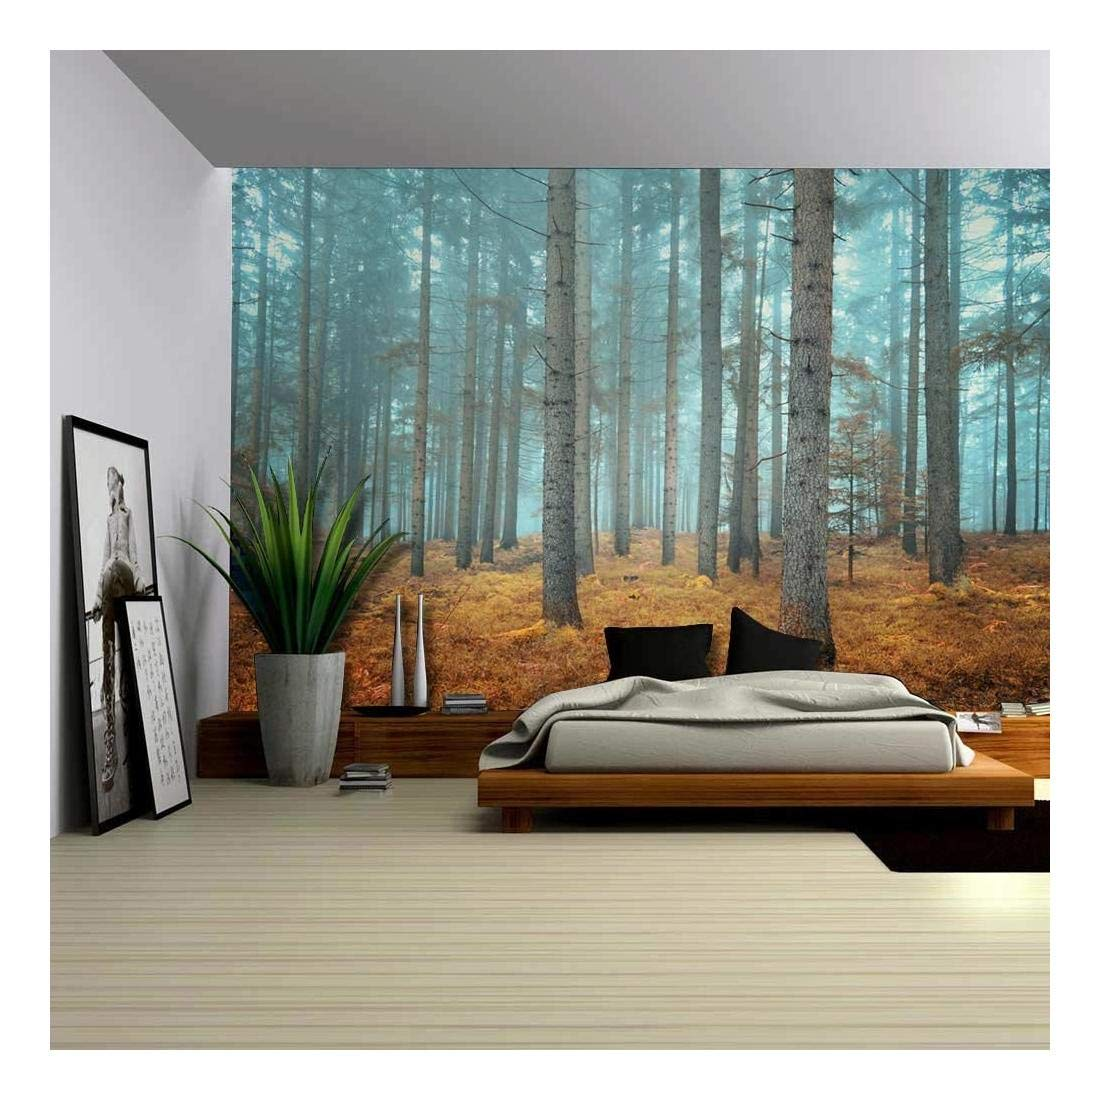 Wall26 - Beautiful Dreamlike Forest in Autumn Time - Wall Mural, Removable Sticker, Home Decor - 100x144 inches by wall26